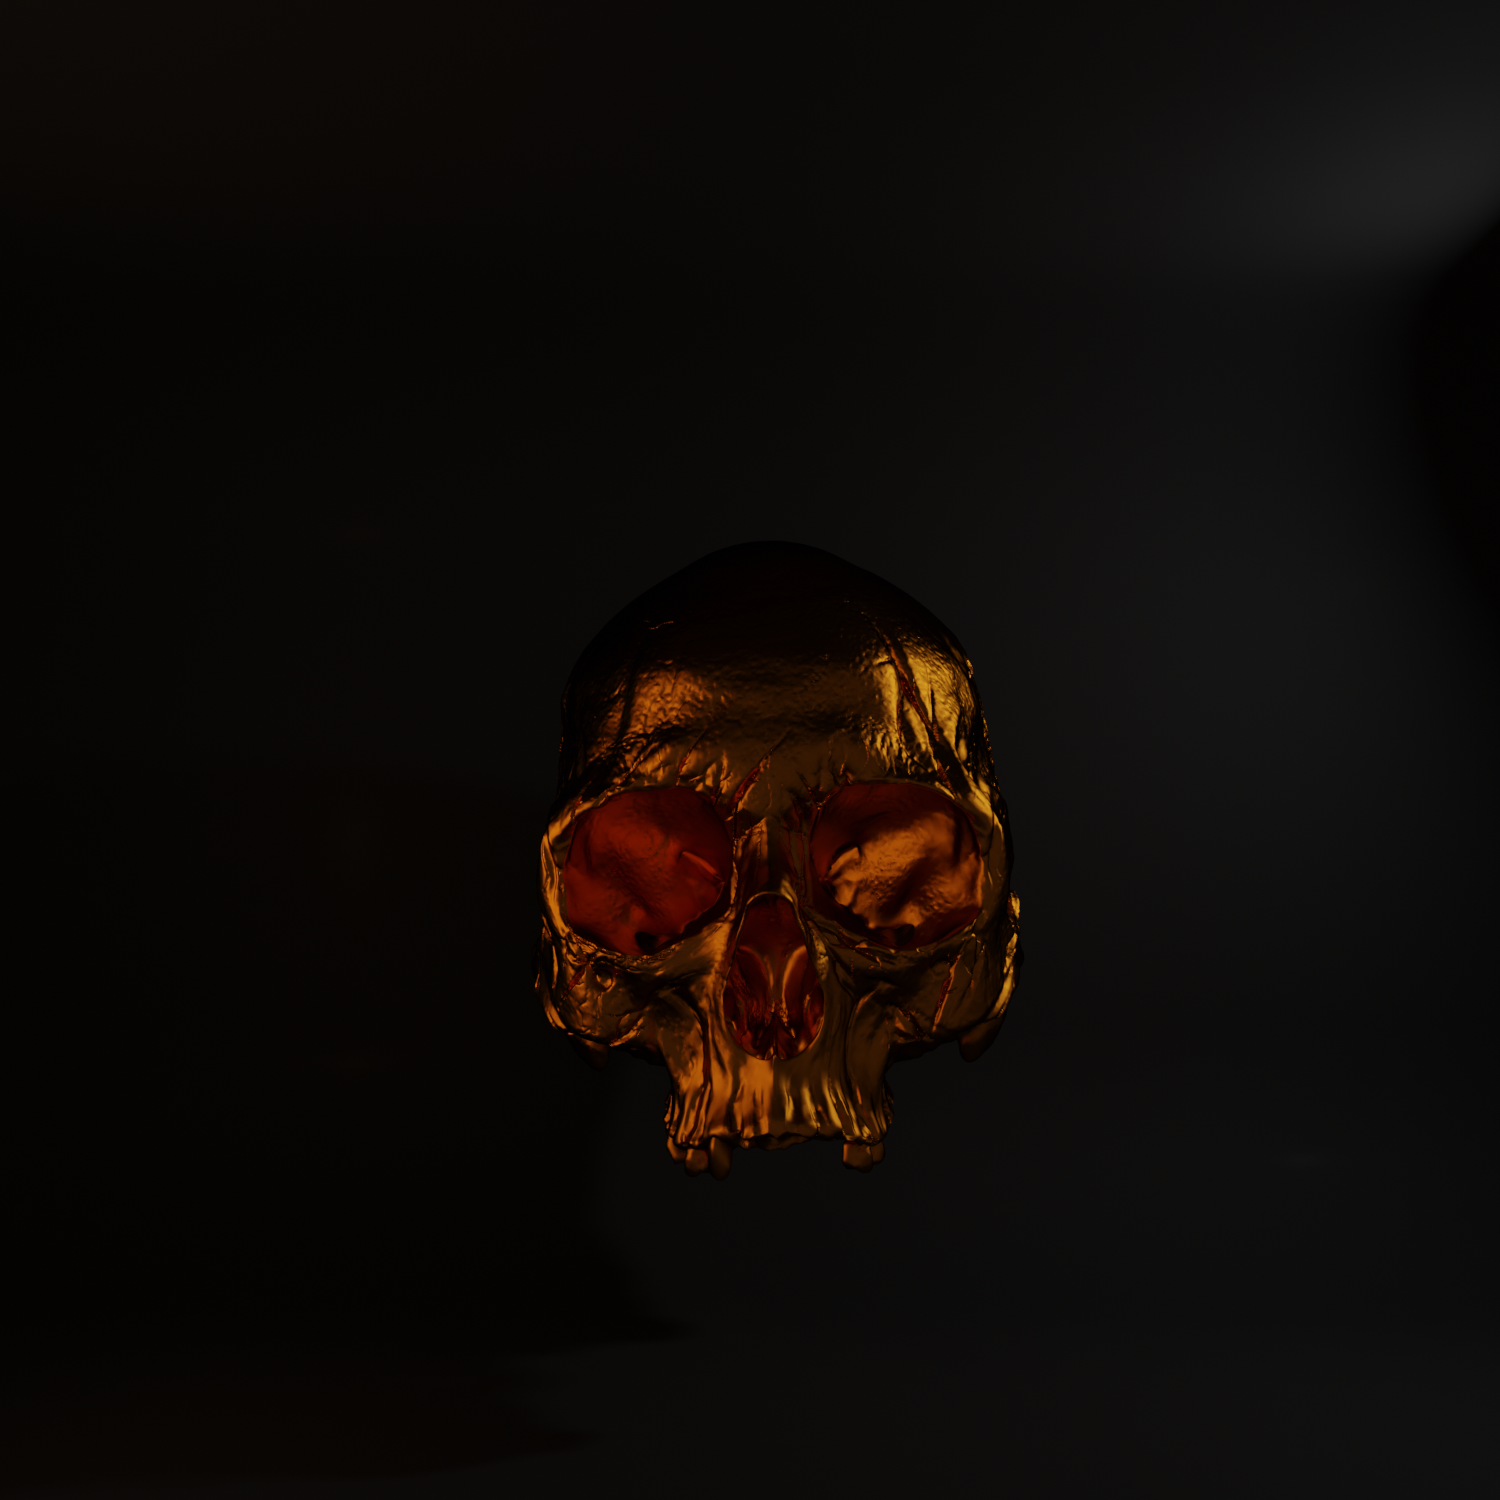 Metallic Gold Skull preview image 1